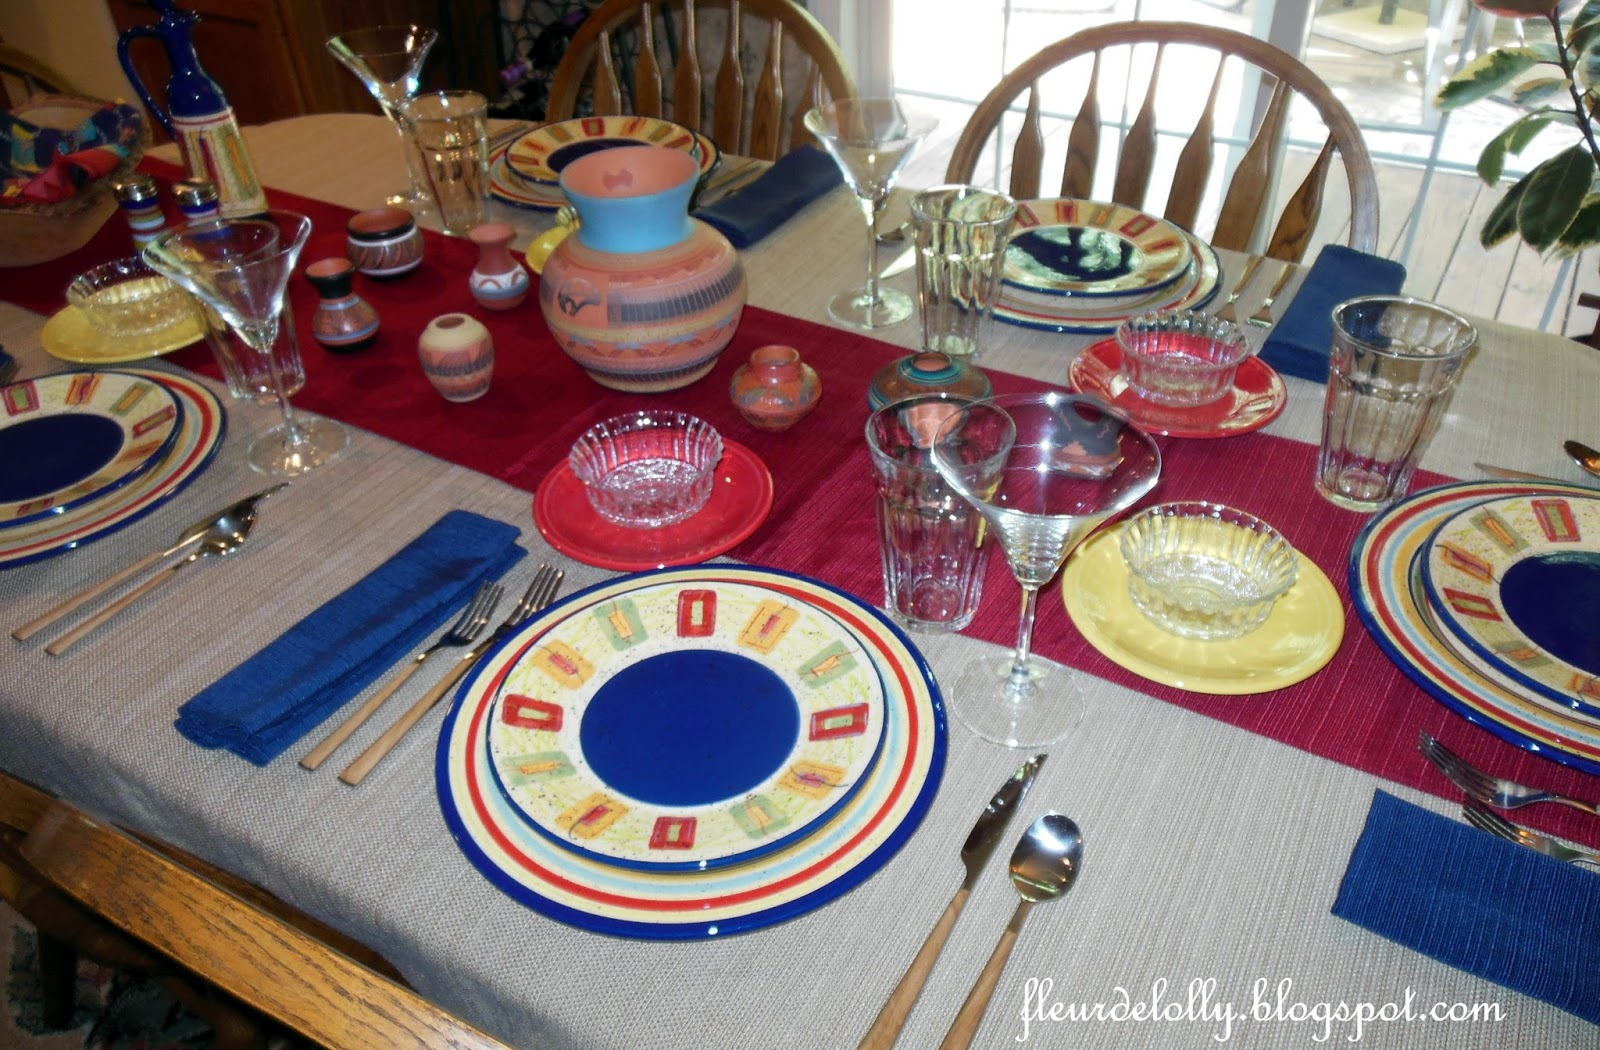 The Place Settings Are Pfaltzgraffu0027s Sedona Pattern, The Dessert Plates Are  Fiestaware, Silverware Is From World Market And Table Linens Are From  Kohlu0027s.